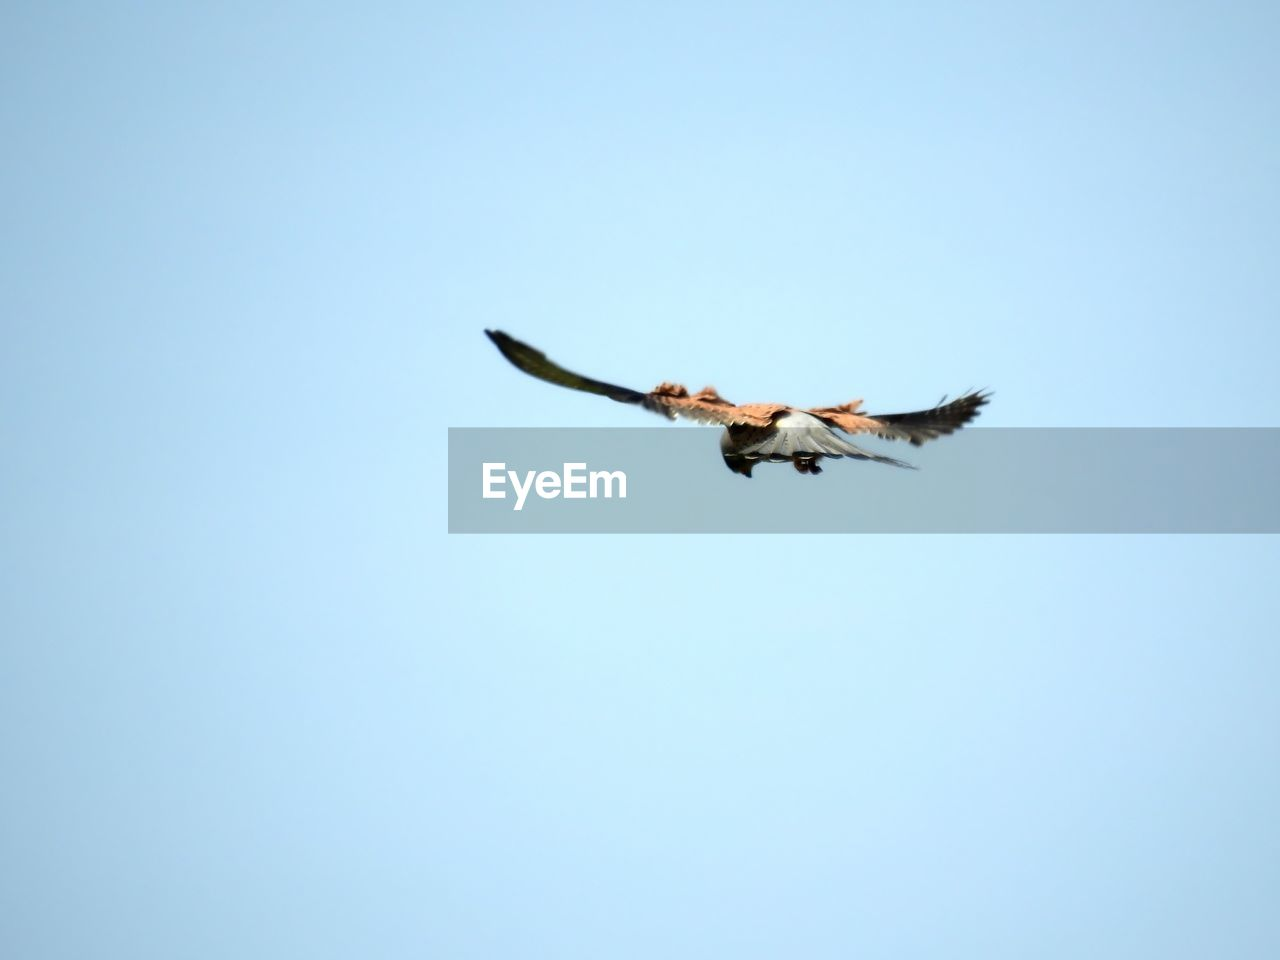 flying, sky, clear sky, low angle view, one animal, animal, vertebrate, copy space, spread wings, bird, animal themes, animal wildlife, blue, animals in the wild, mid-air, motion, day, nature, no people, outdoors, directly below, eagle